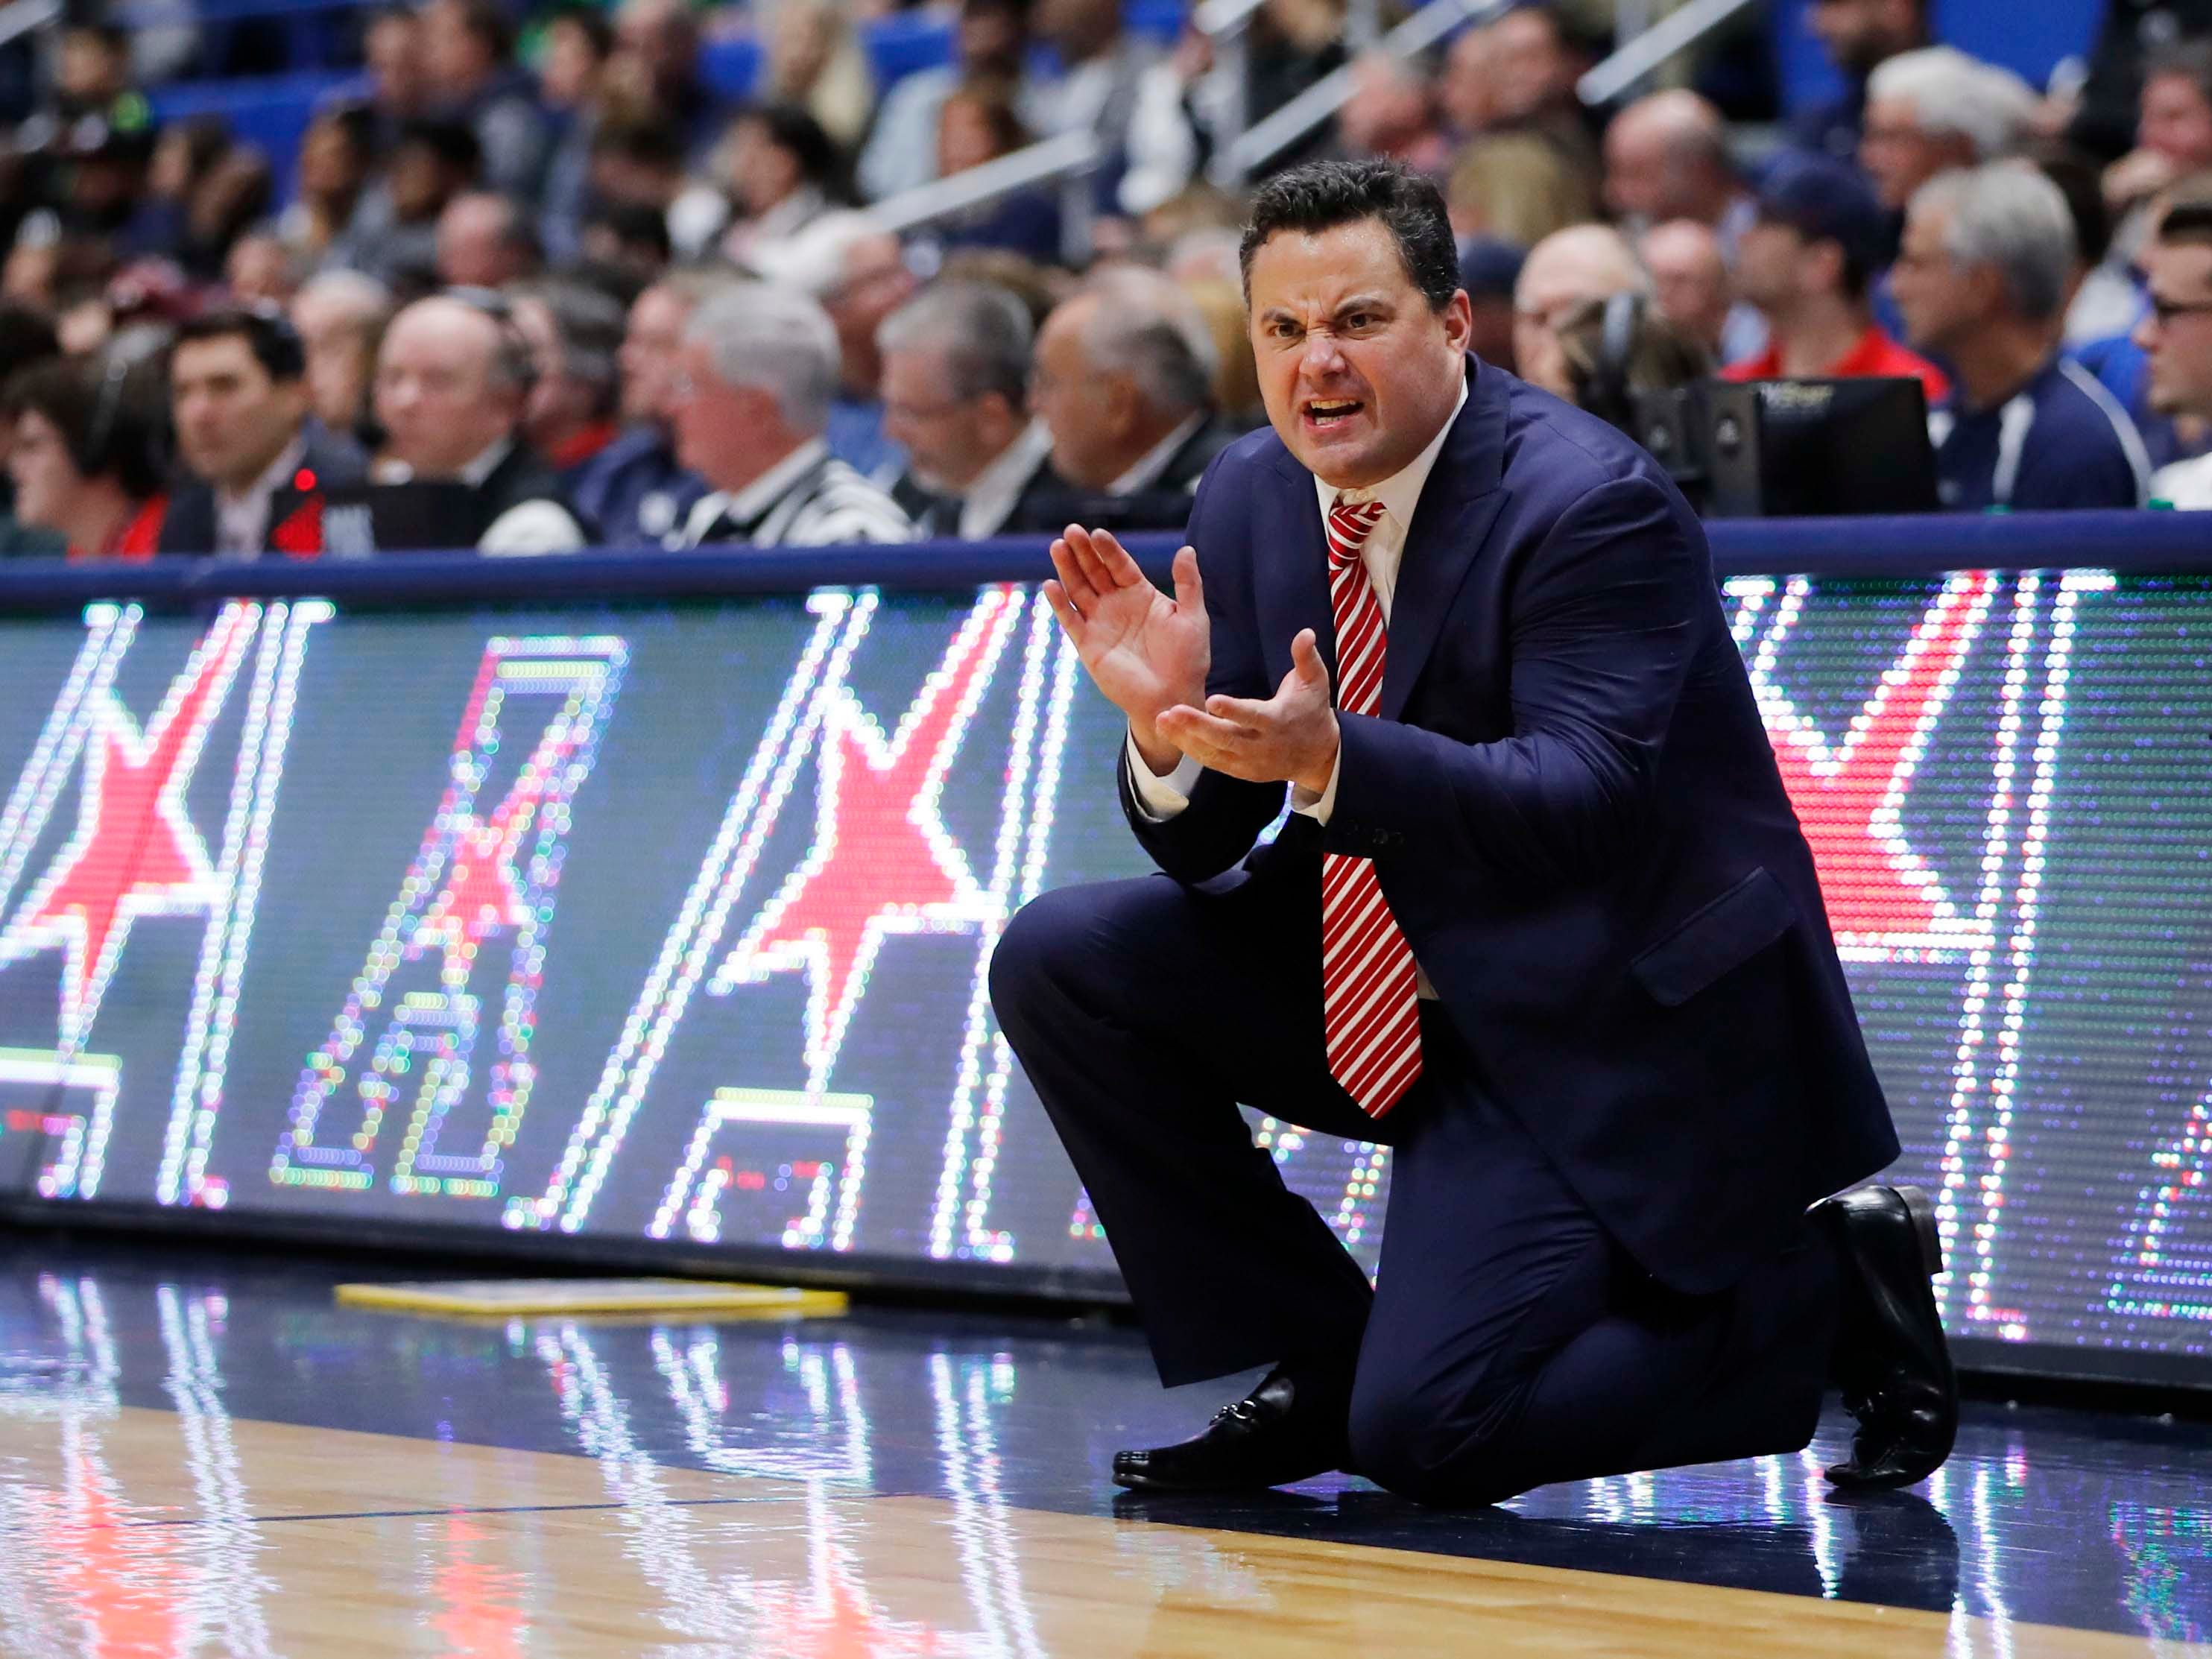 Dec 2, 2018: Arizona Wildcats head coach Sean Miller watches from the sideline as they take on the Connecticut Huskies in the first half at XL Center.